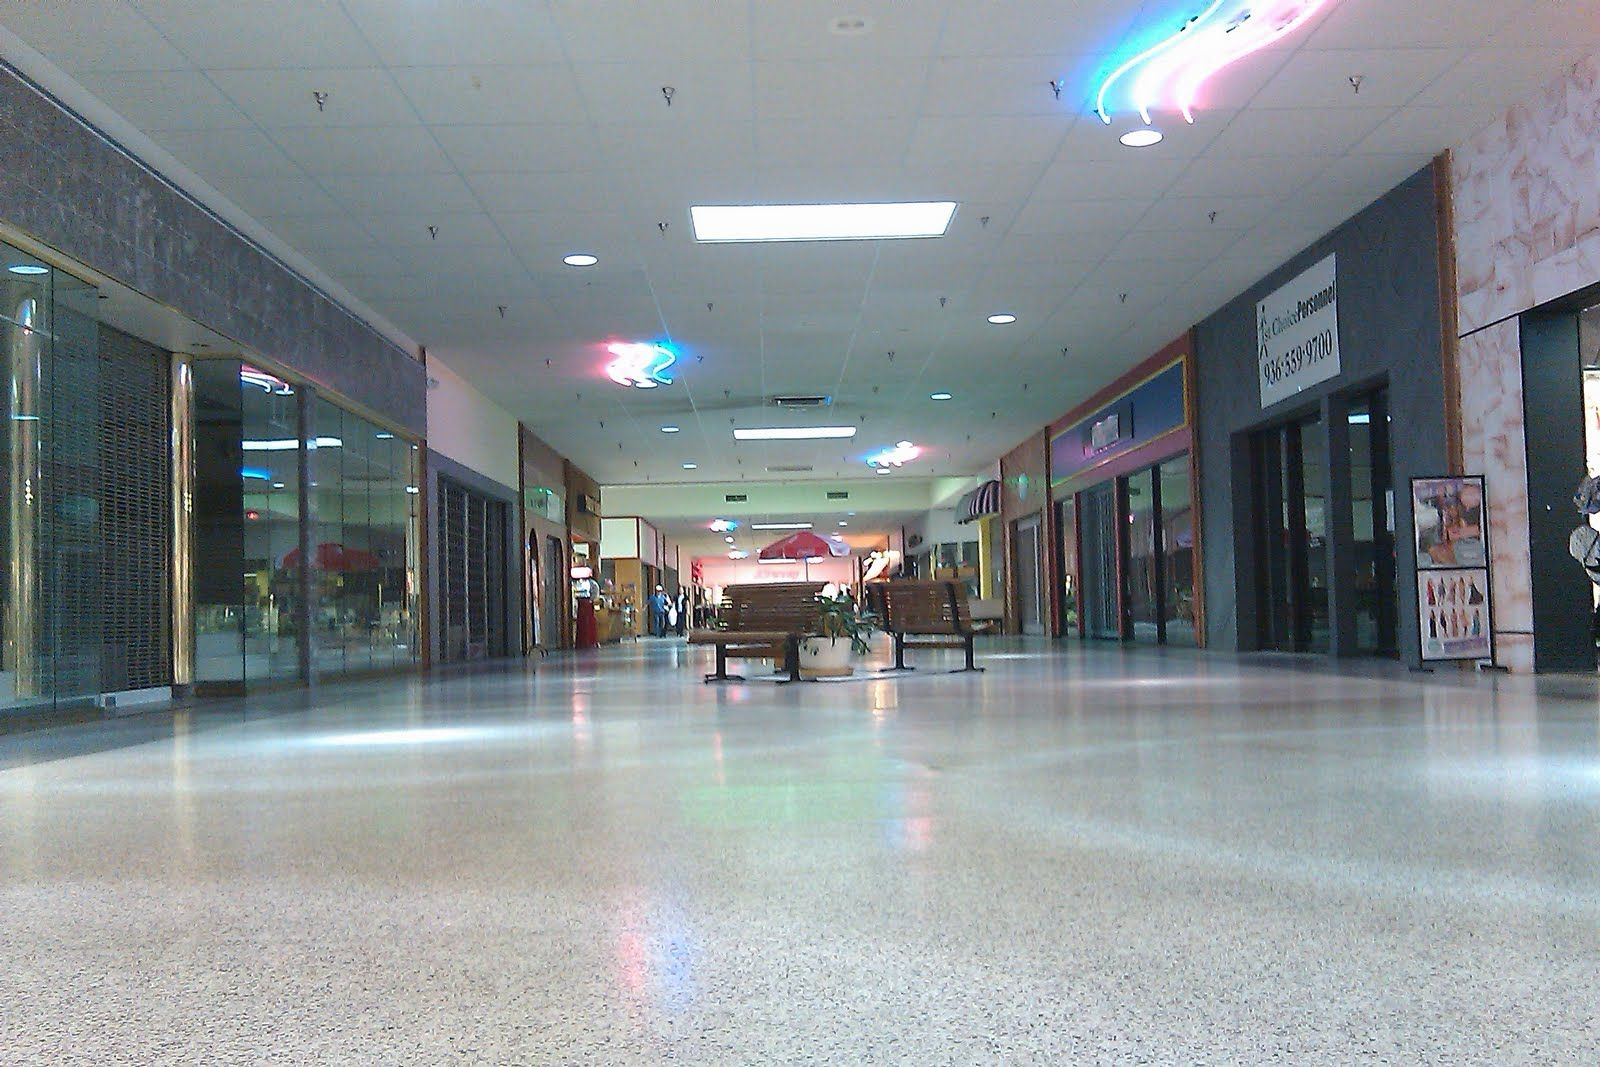 mall - Google Search | Trigger Happy settings | Pinterest | Mall